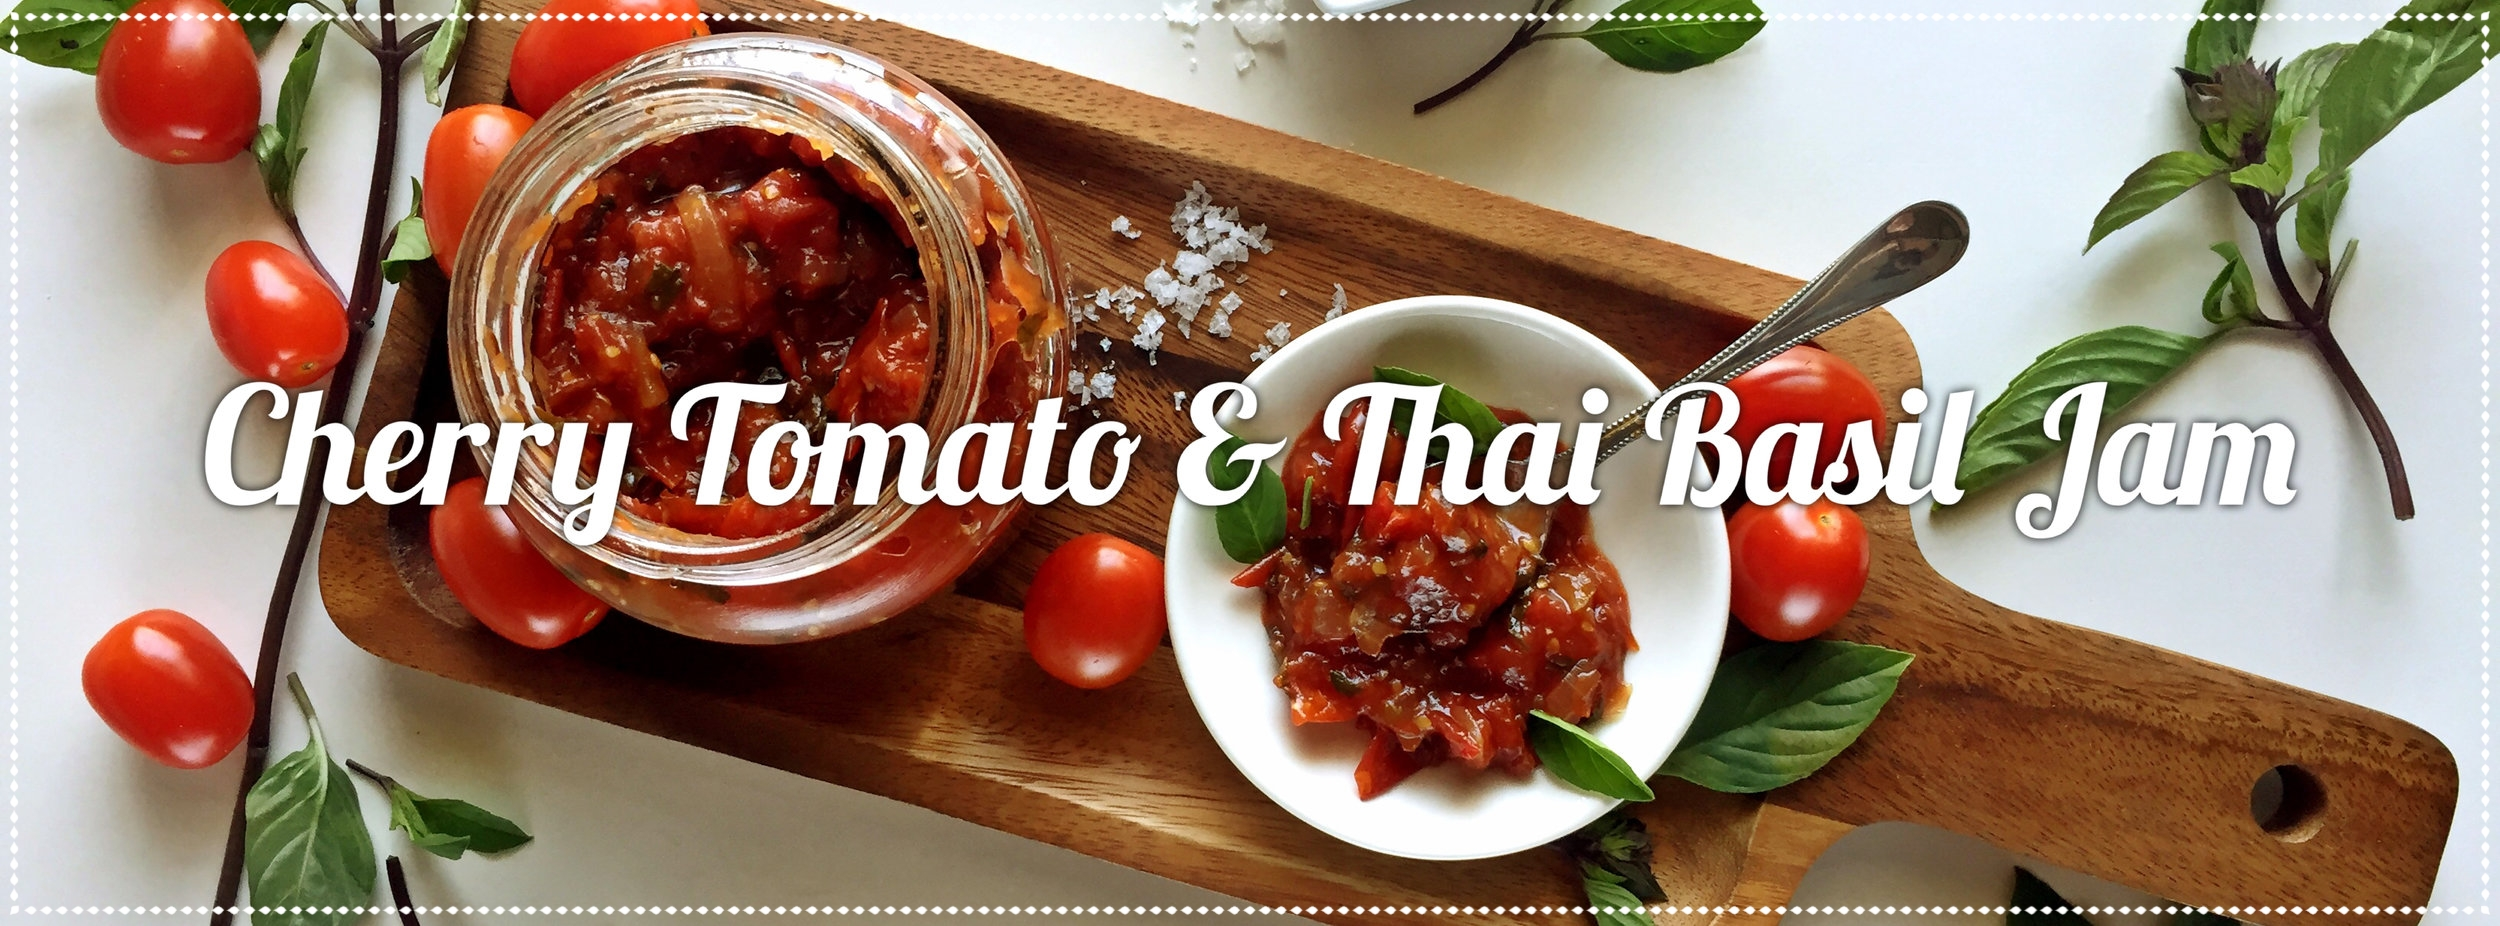 Cherry Tomato and Thai Basil Jam